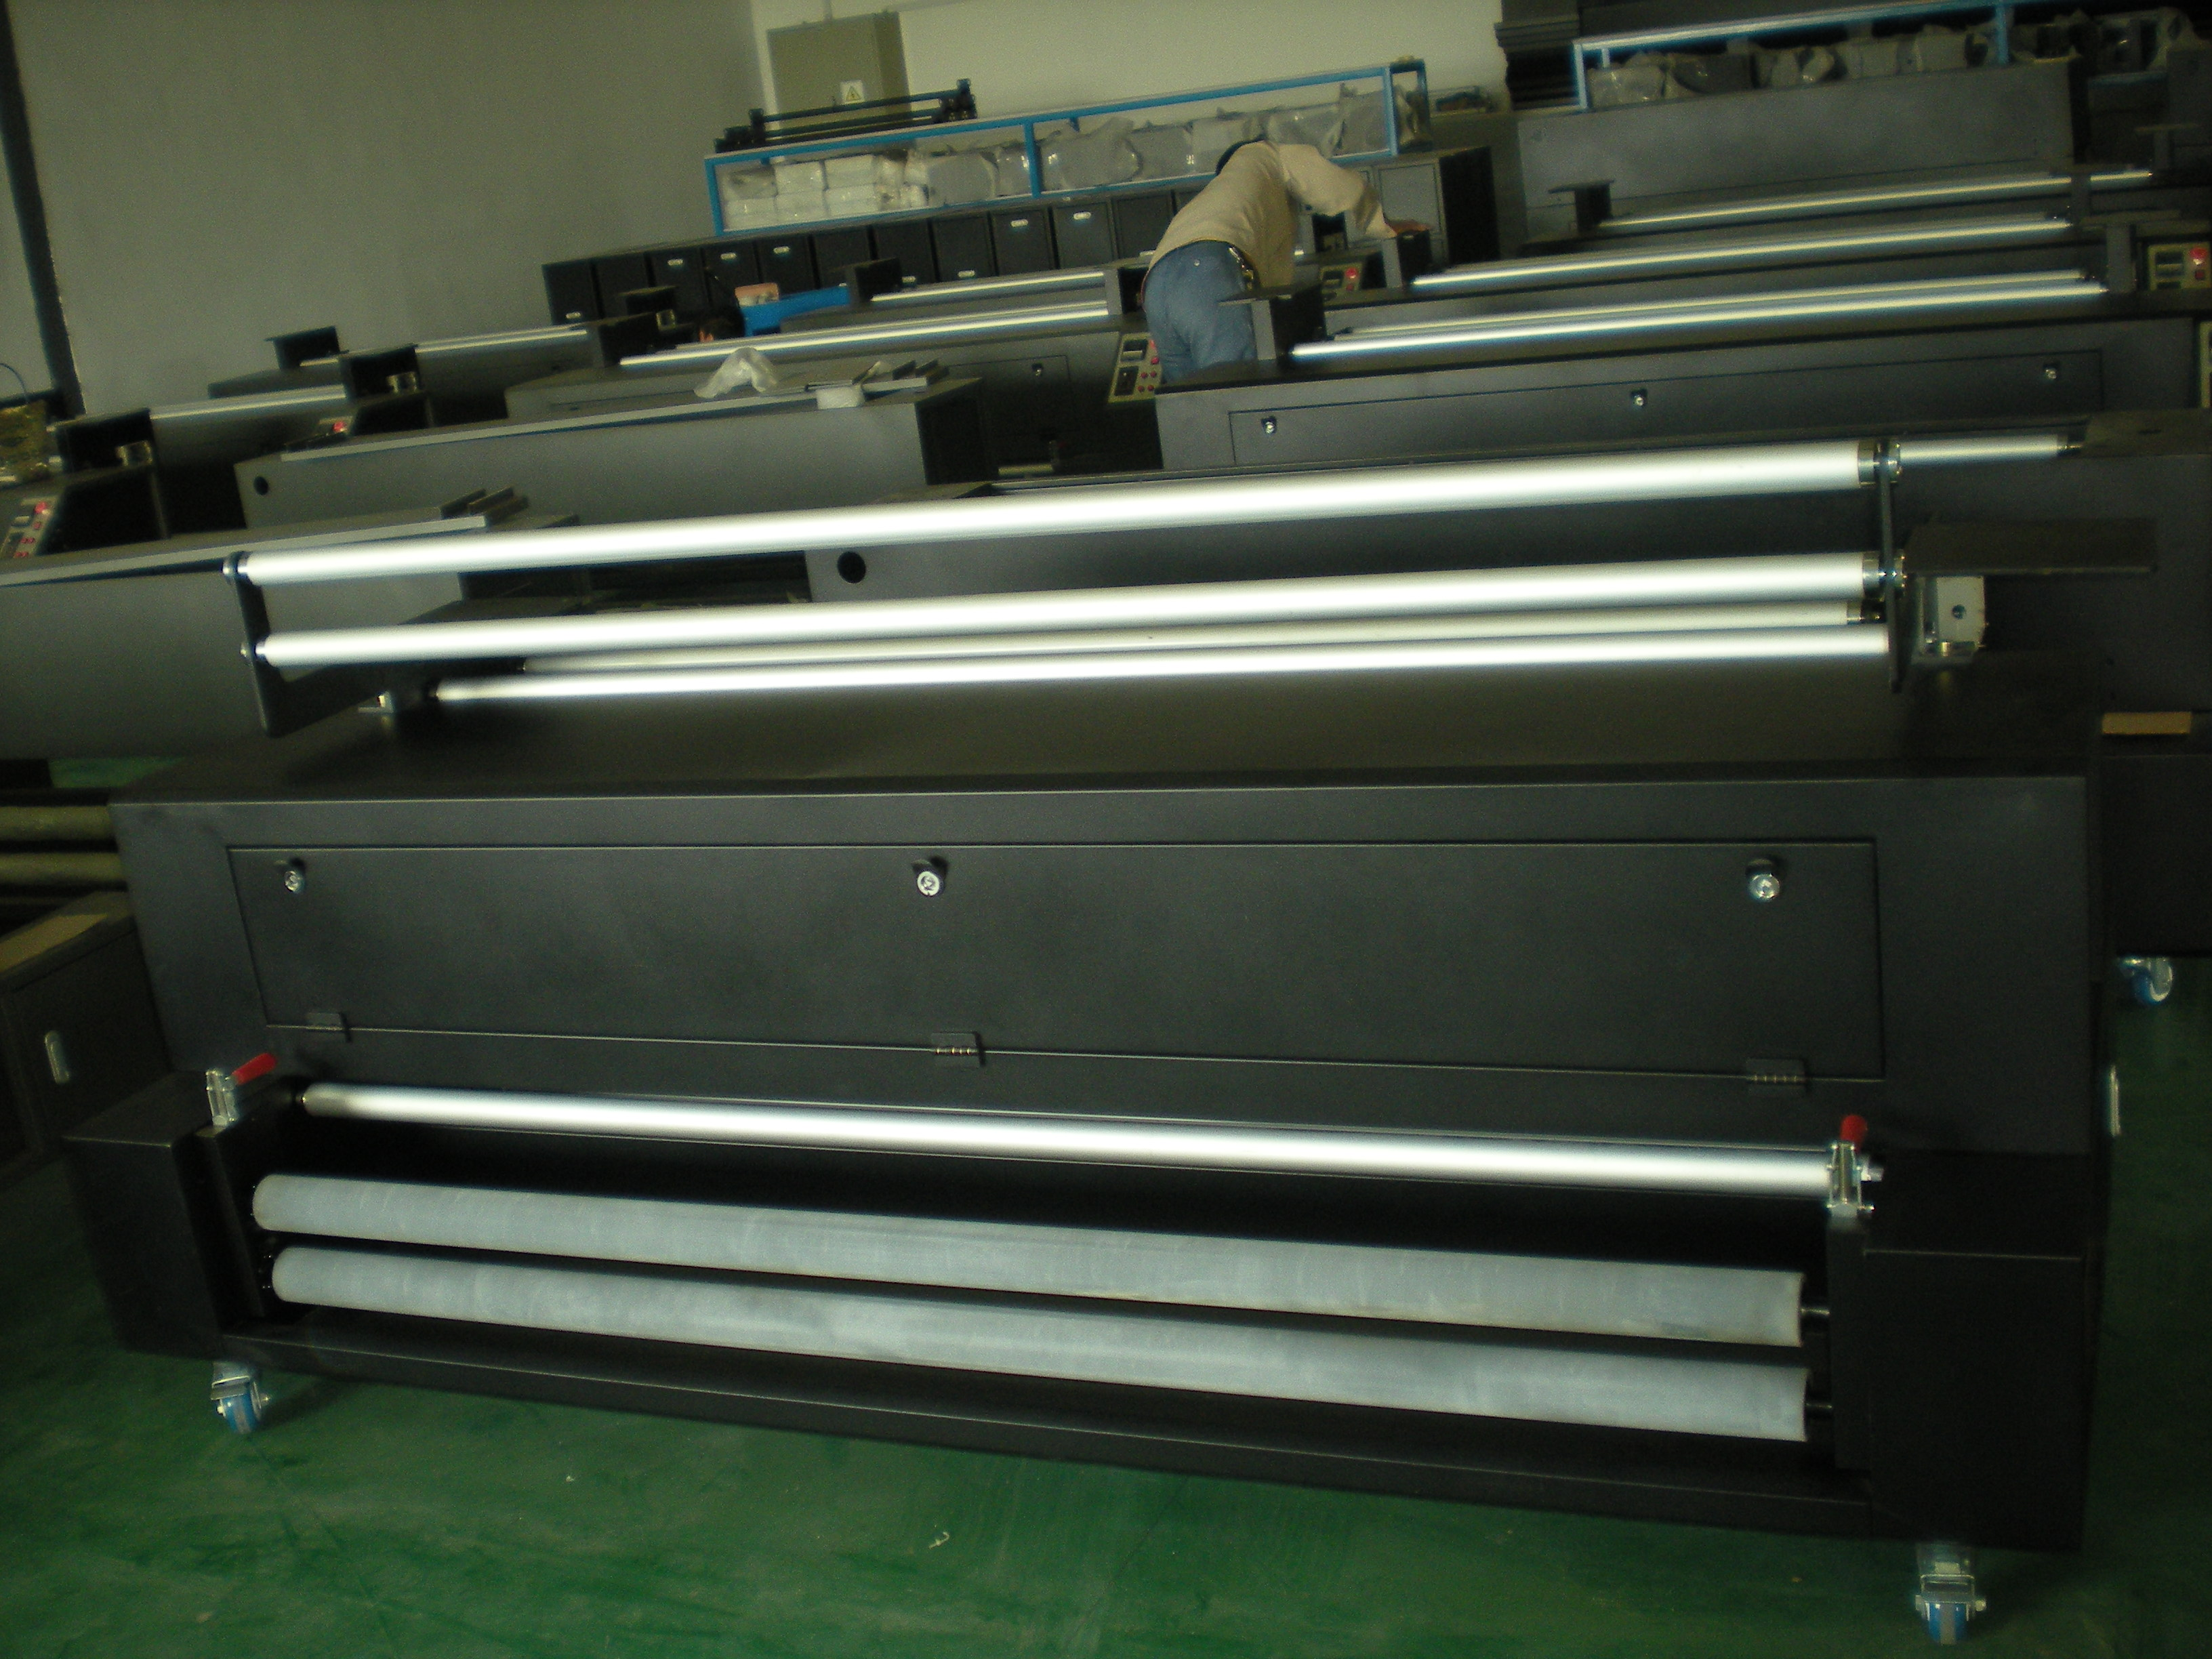 Direct Dye Sublimation Printer and Heater-Mut1600 (1600mm Flag-Making System)